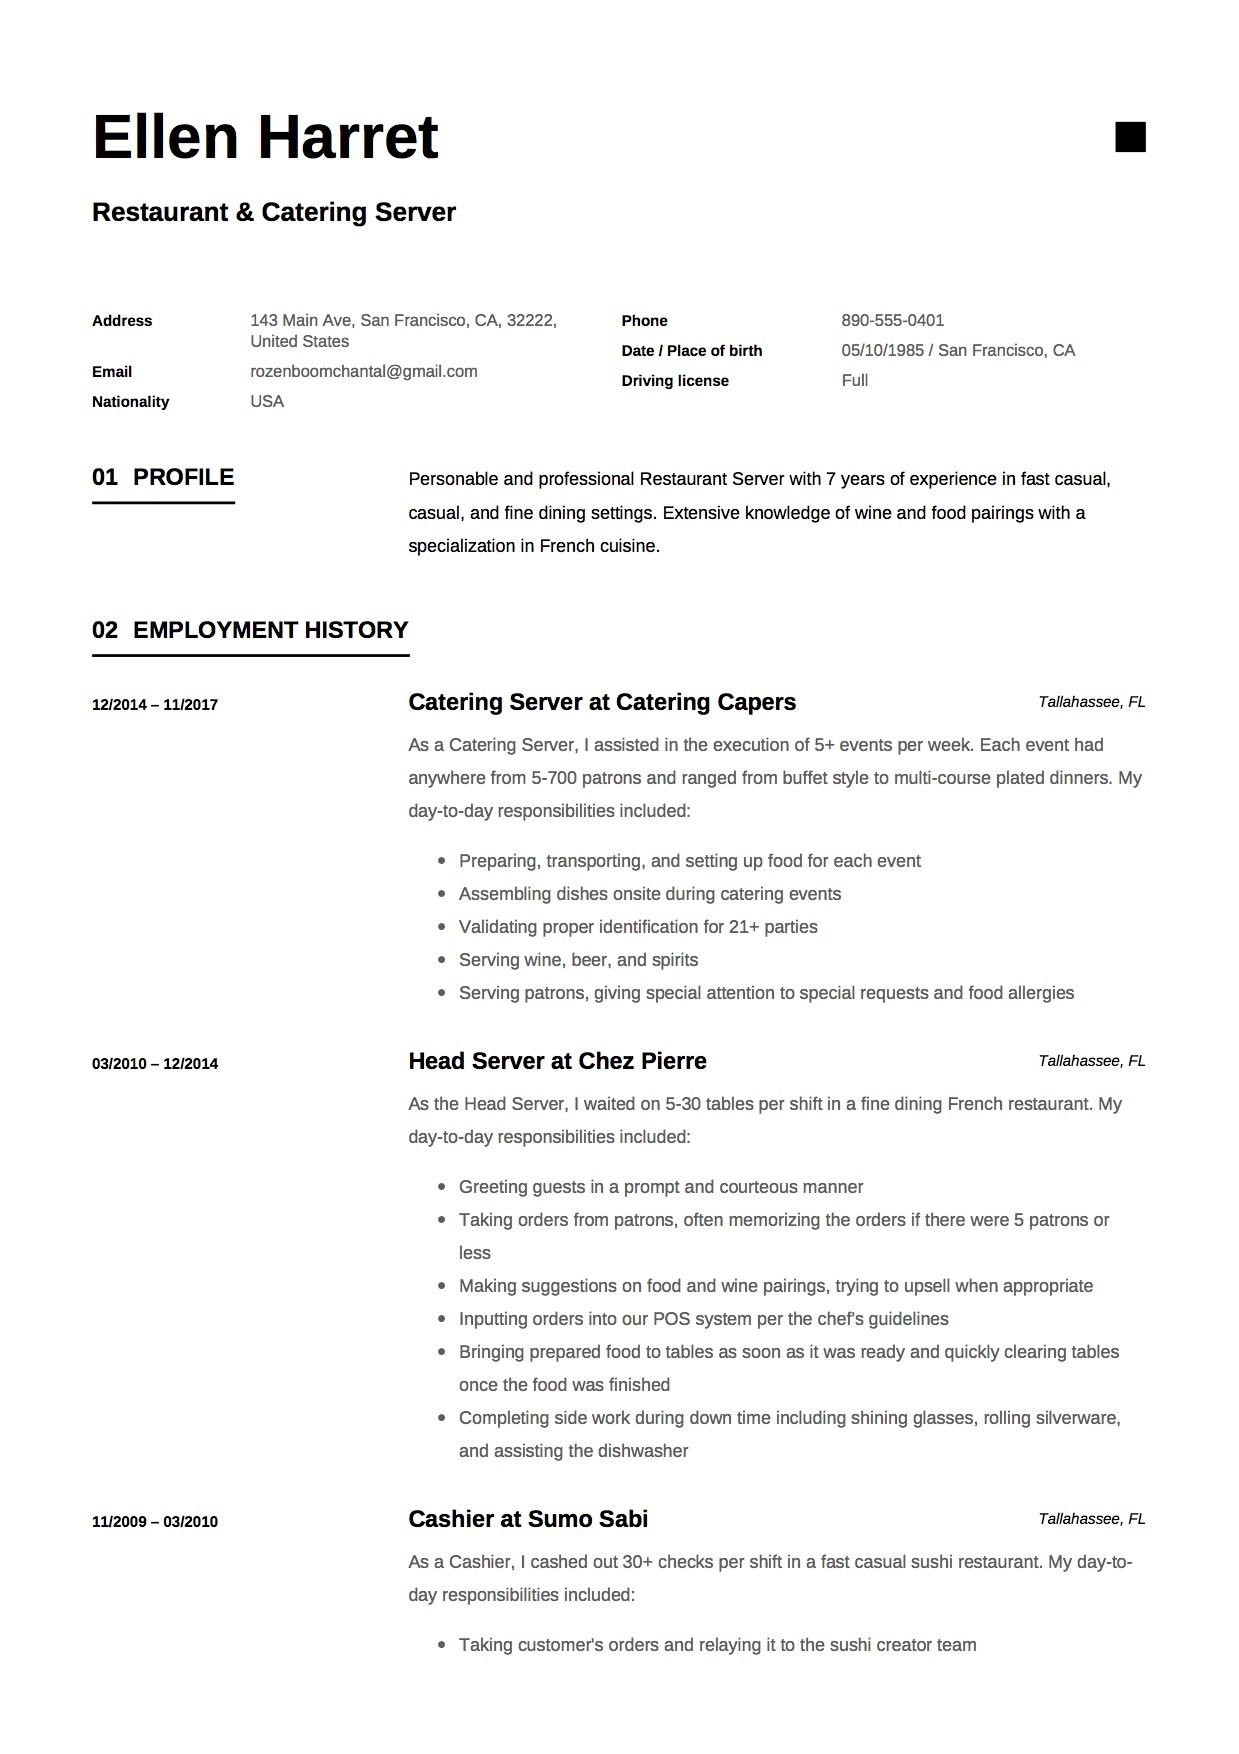 Restaurant and Catering Resume Sample, Example, Template